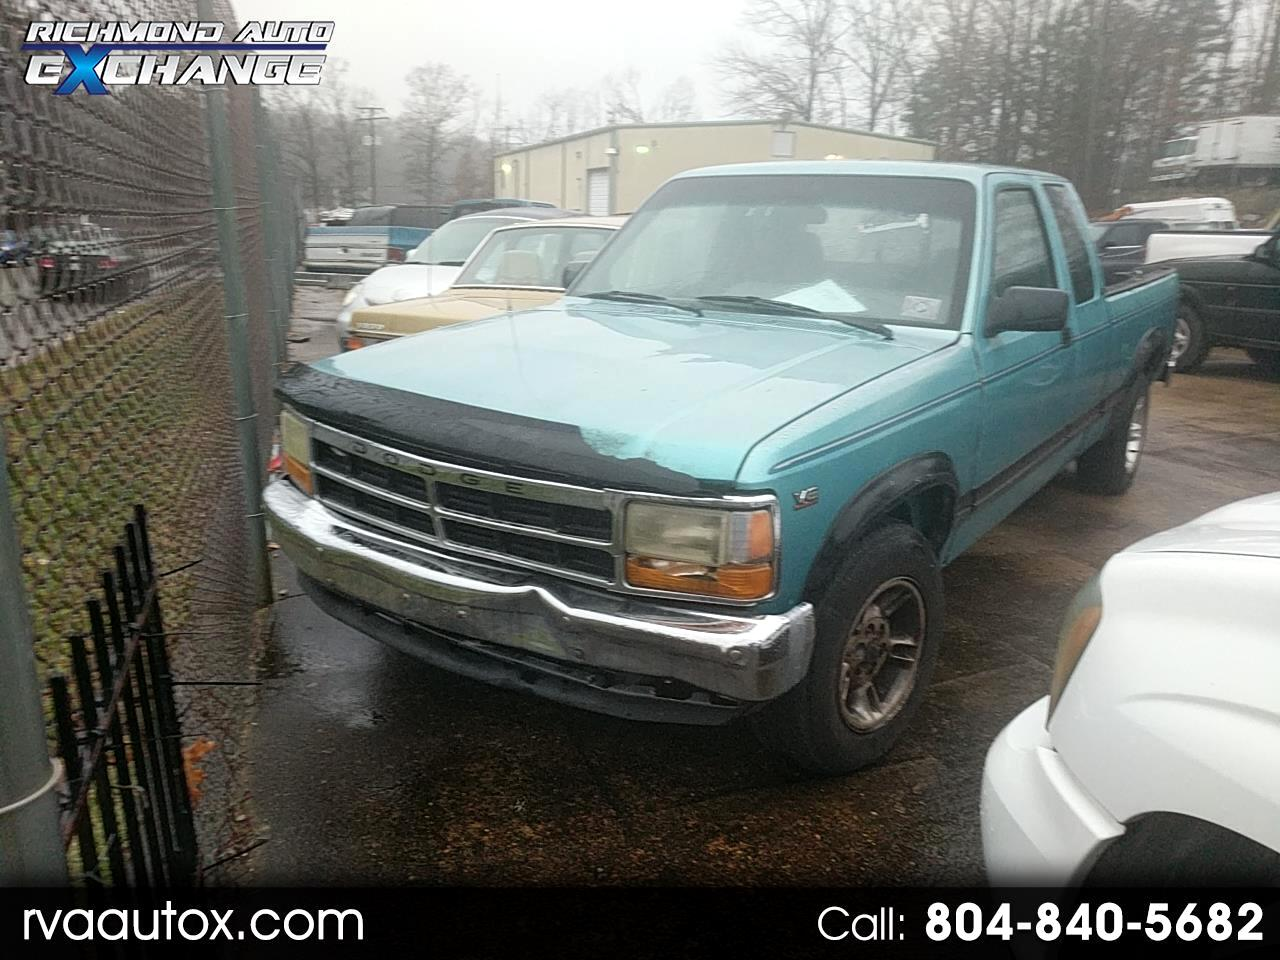 1995 Dodge Dakota Club Cab 6.5-ft. Bed 2WD